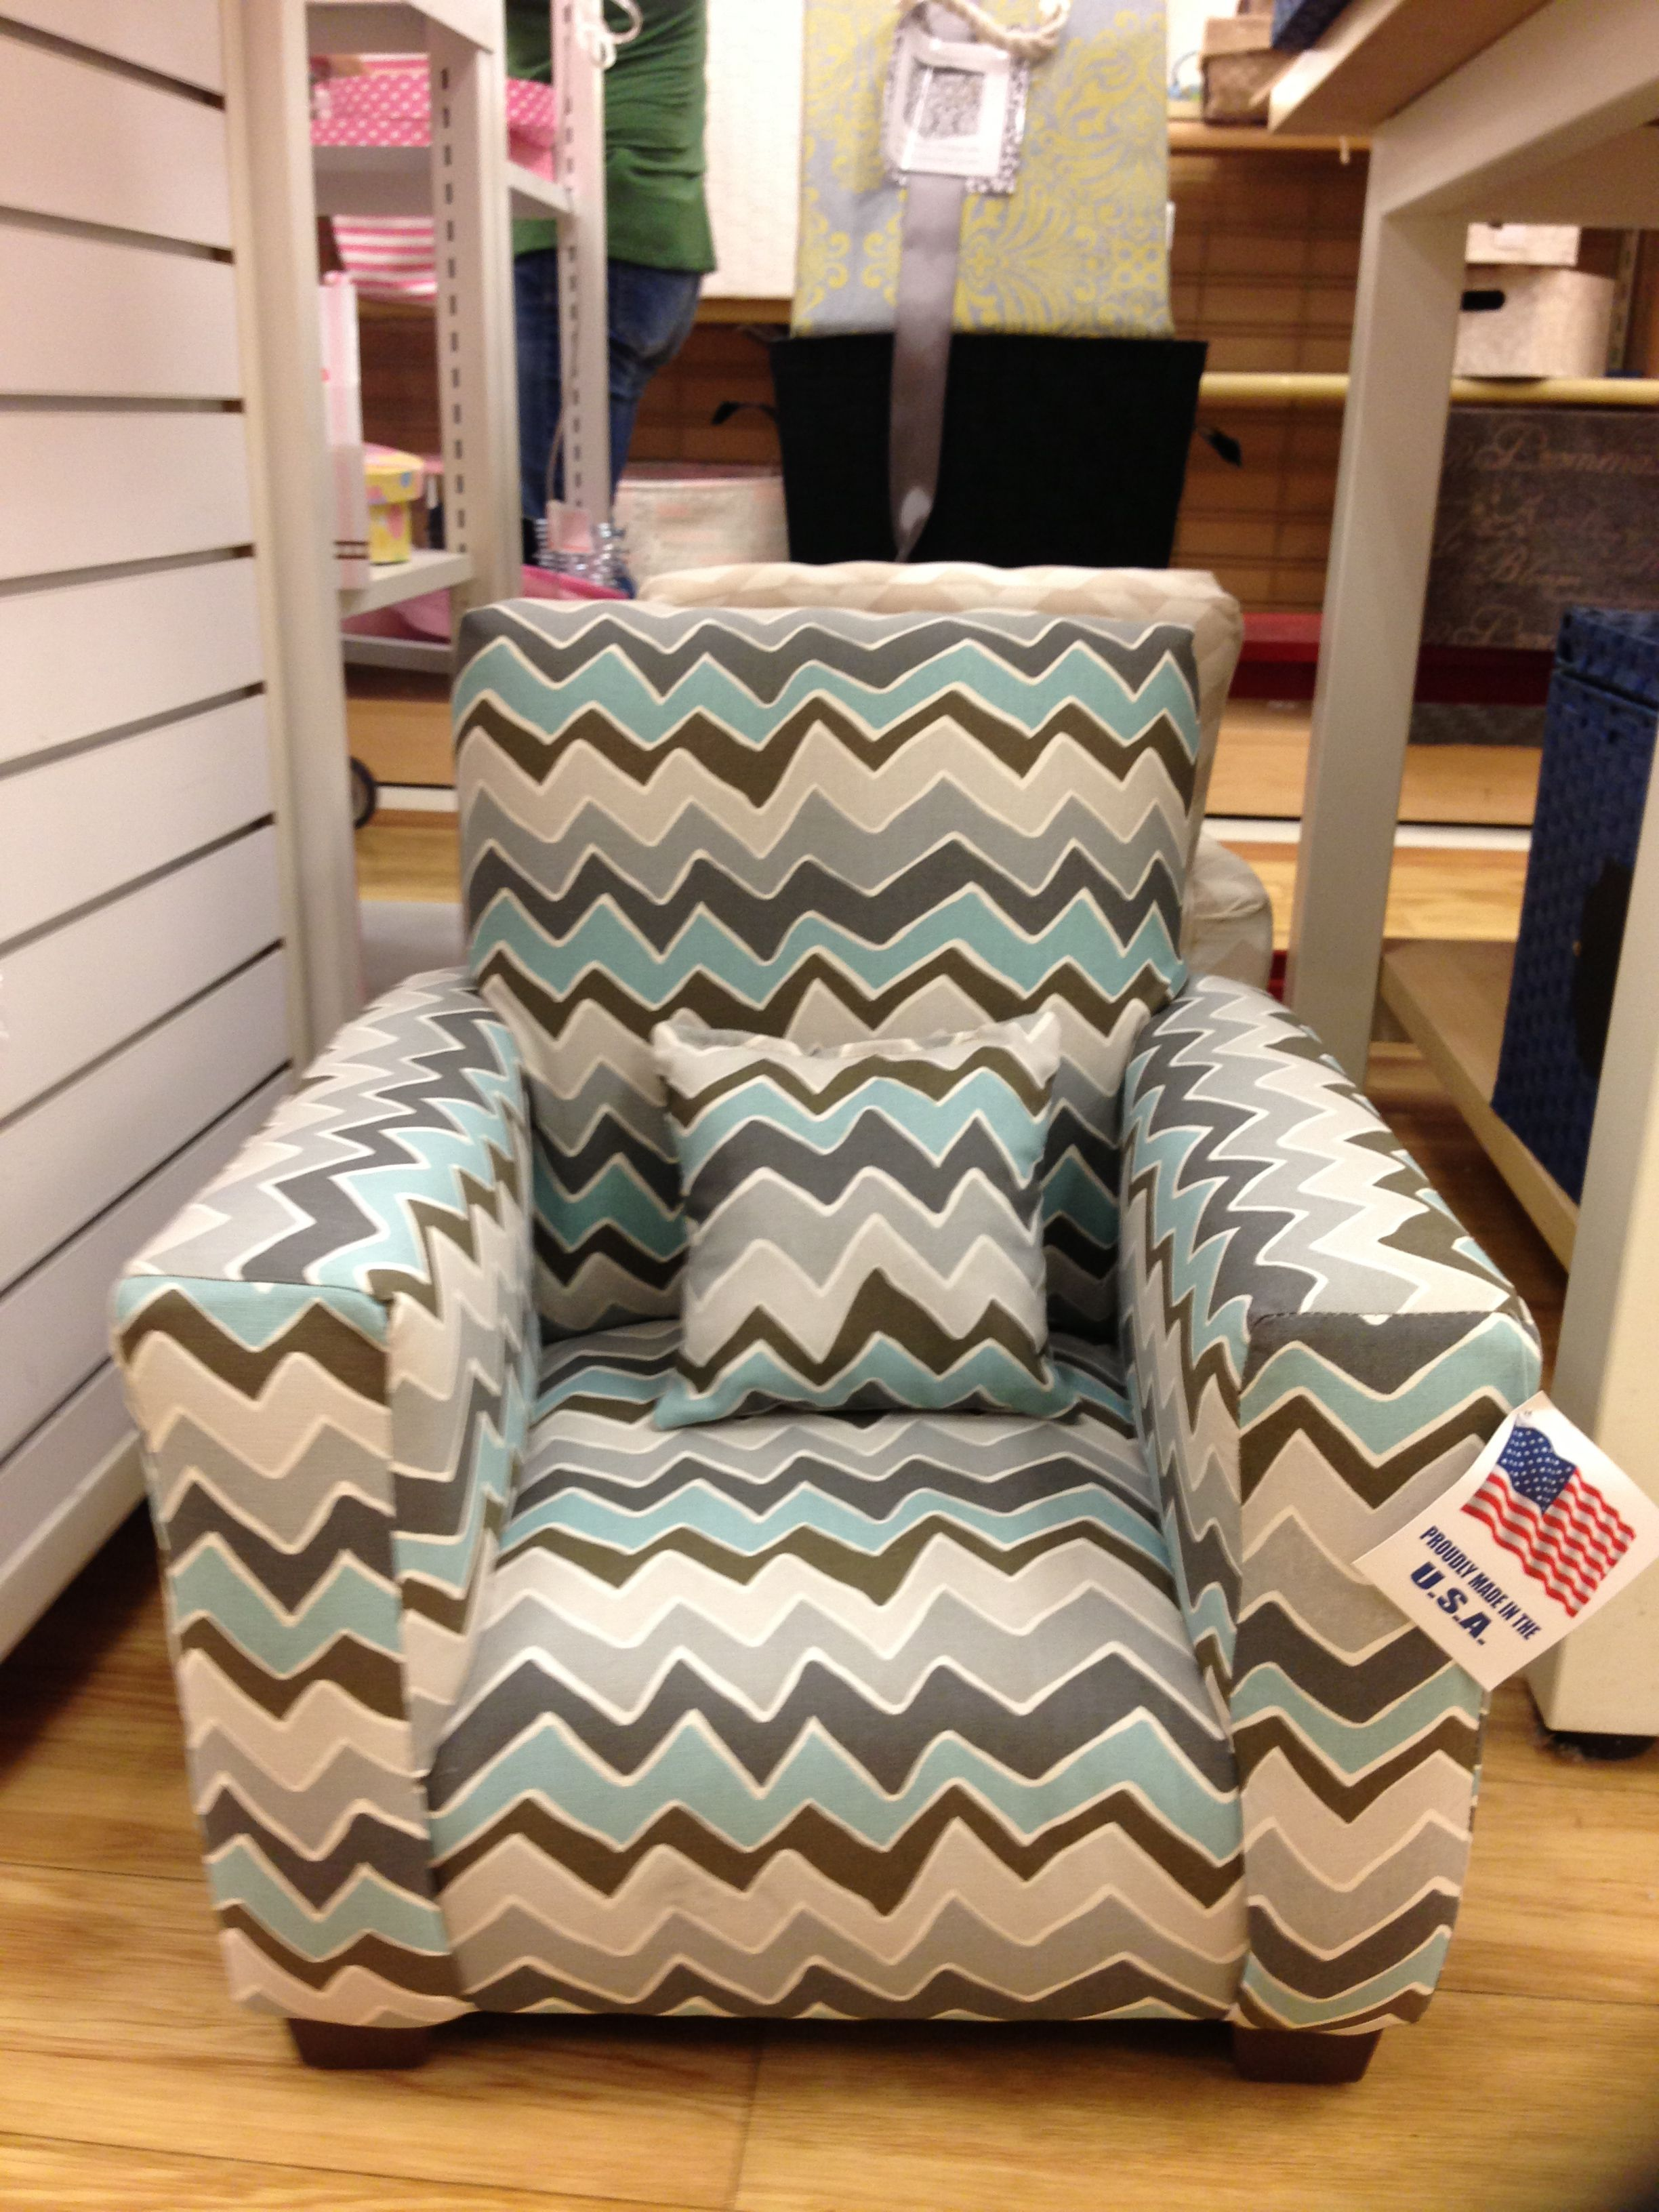 Chairs At Marshalls Potty Chair Large Child Kids Marshall 39s Home Goods